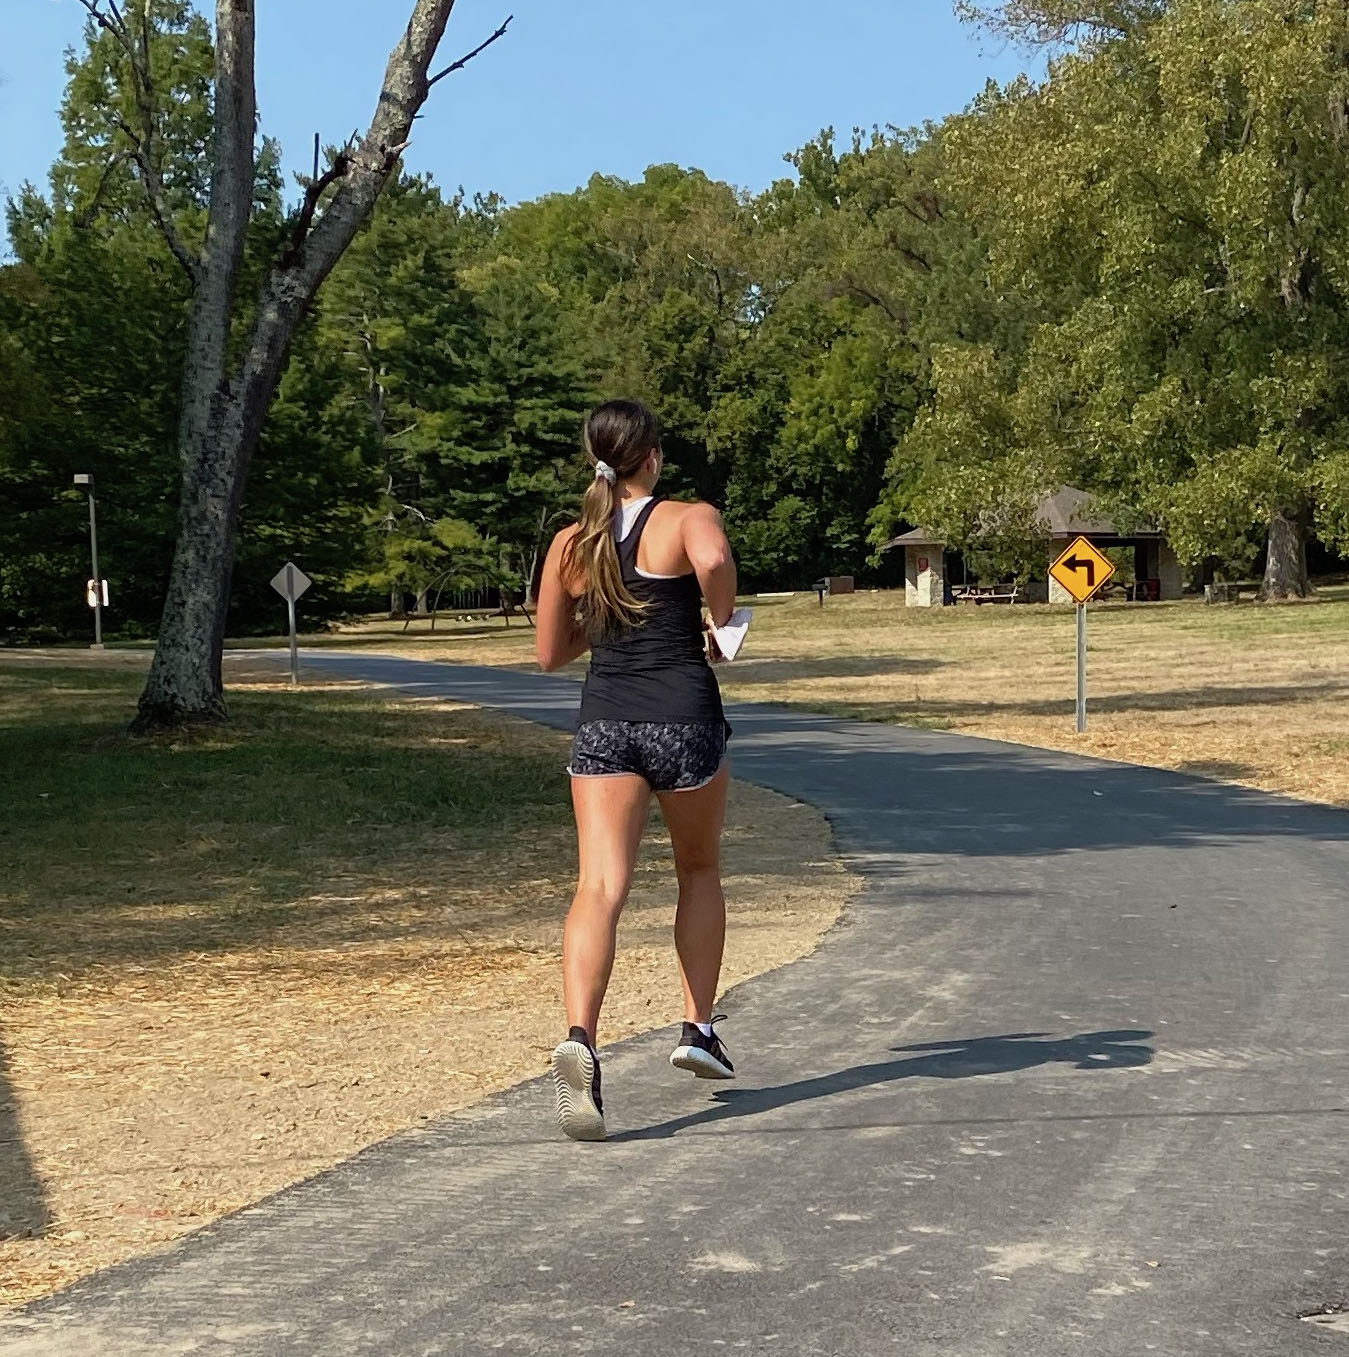 Runners have already made the new section of the Oxford Area Trails part of their regular route